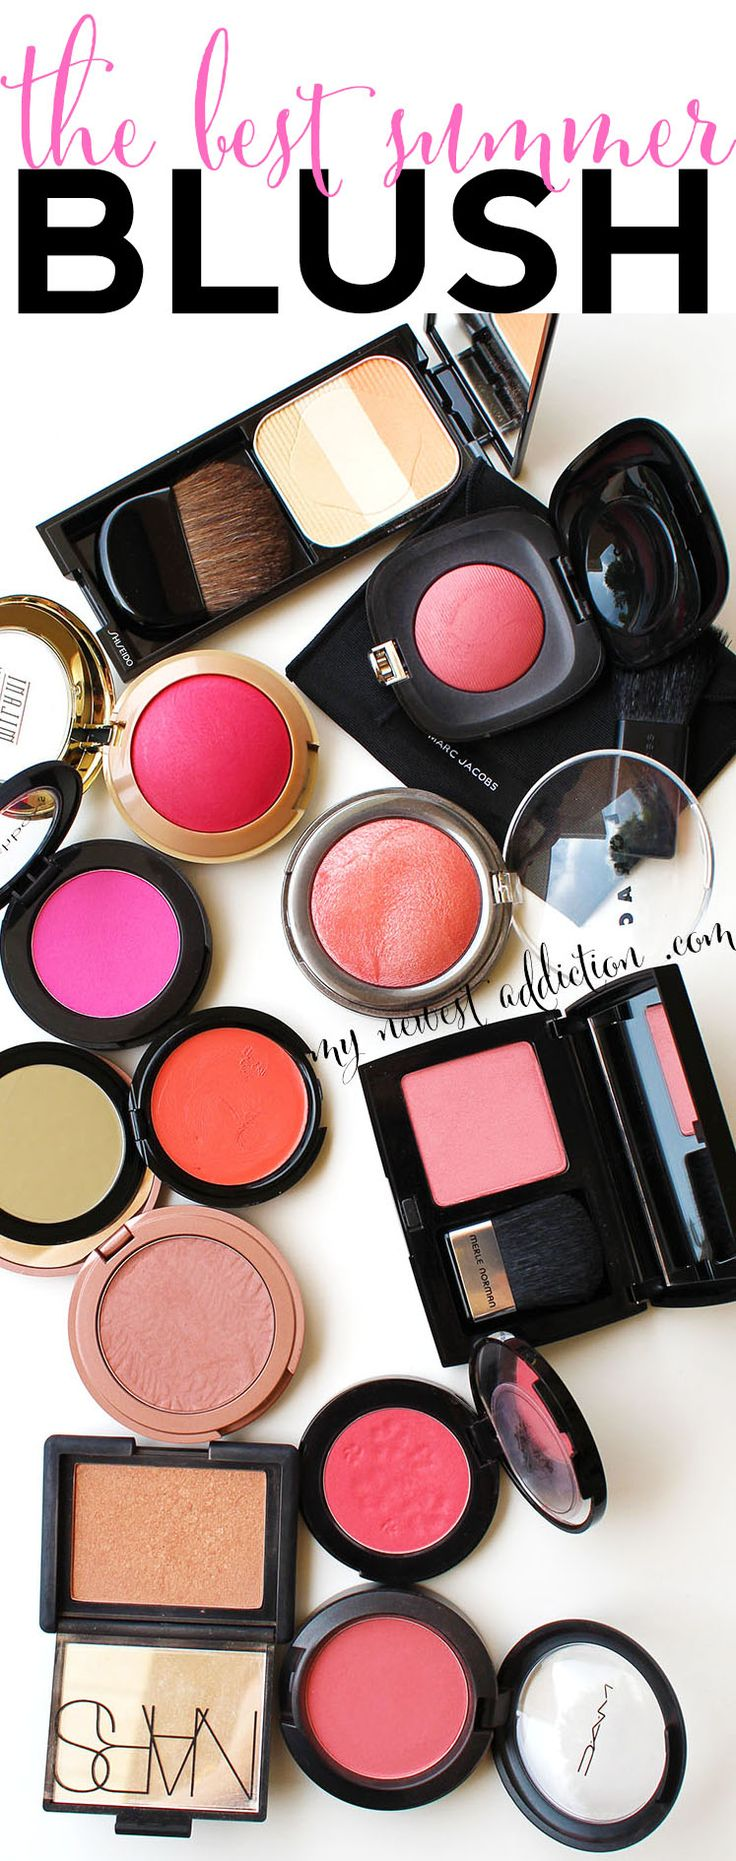 The Best Summer Blush, brights, pinks, nudes, and even fresh shades. - www.mynewestaddiction.com